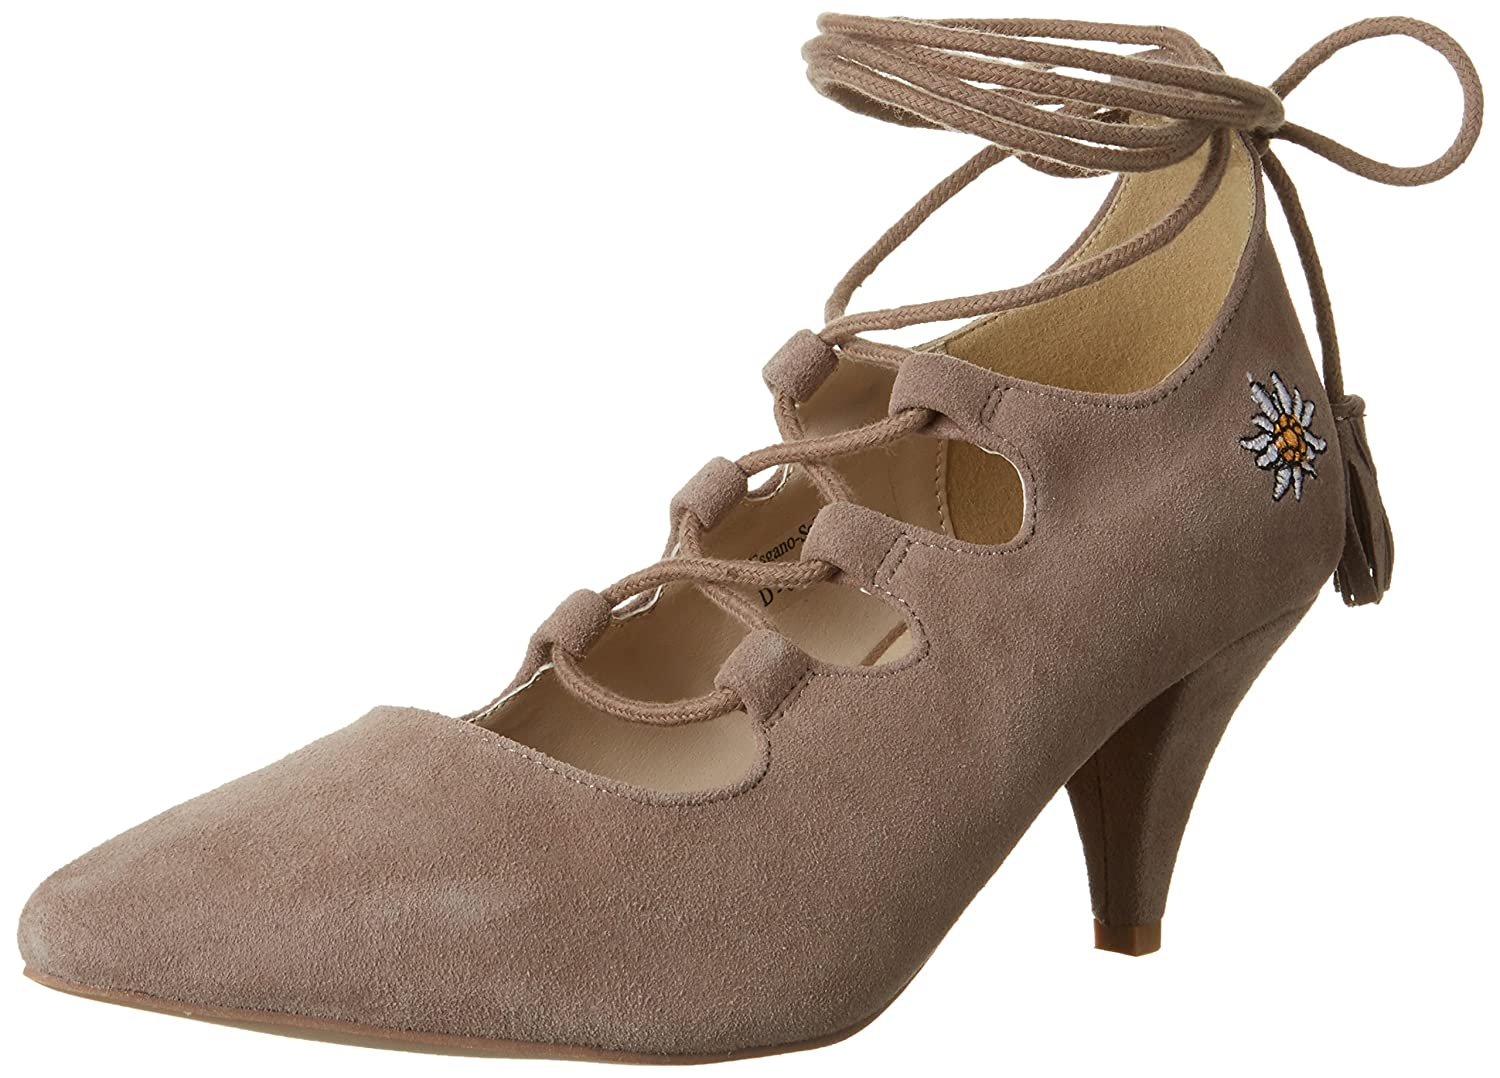 HIRSCHKOGEL Damen 3003422 Pumps Grau Grau Pumps (Taupe) 660d9f